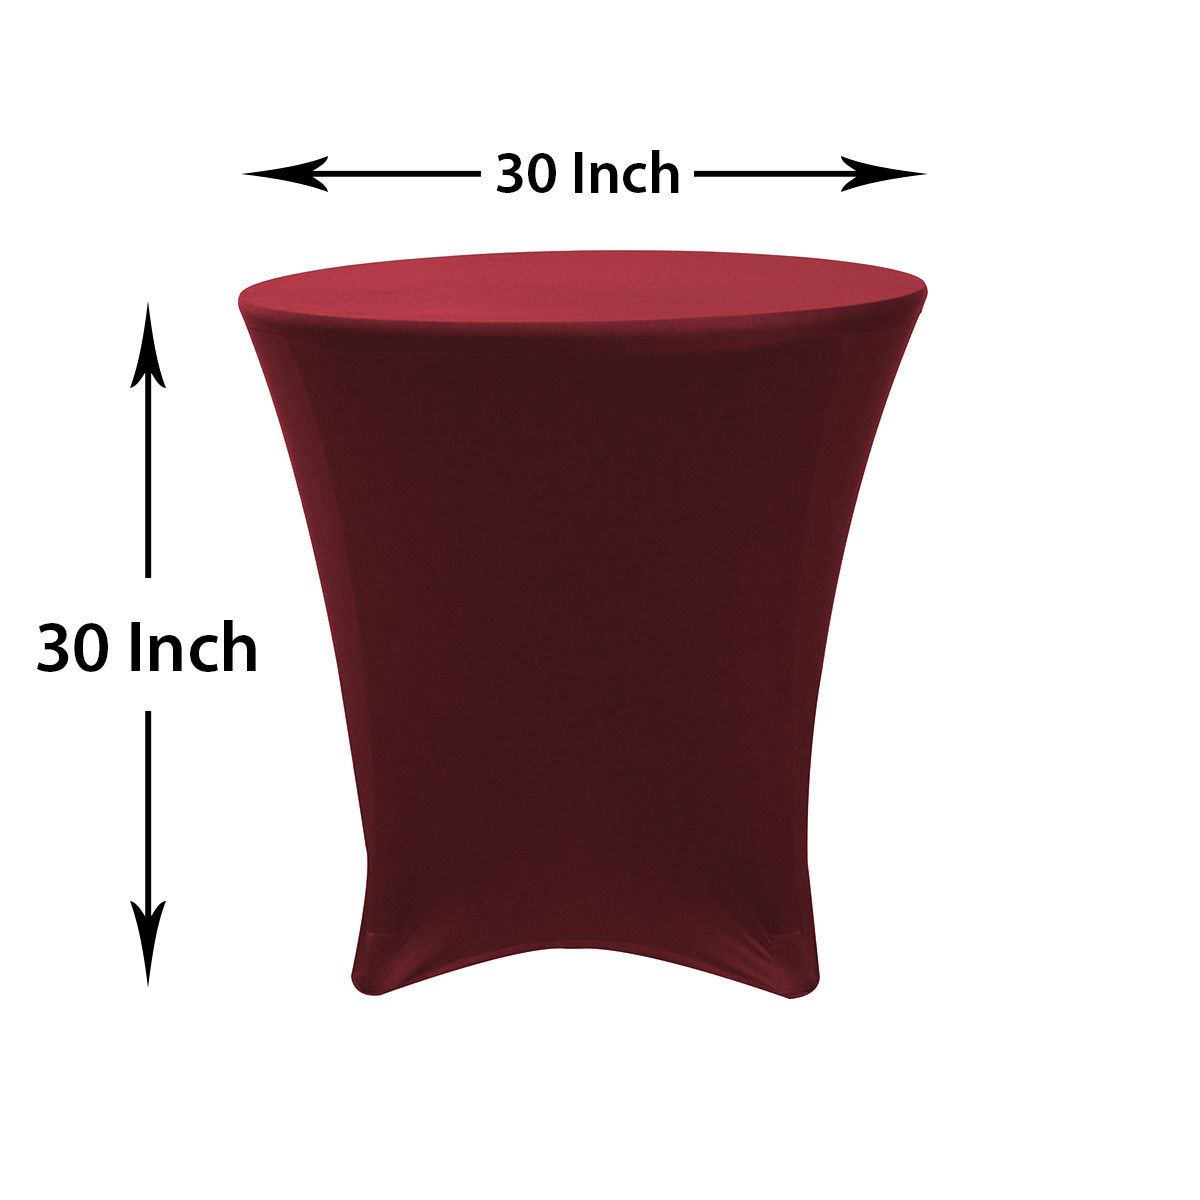 30-30-inch-lowboy-cocktail-spandex-table-covers-burgundy-dimensions.jpg